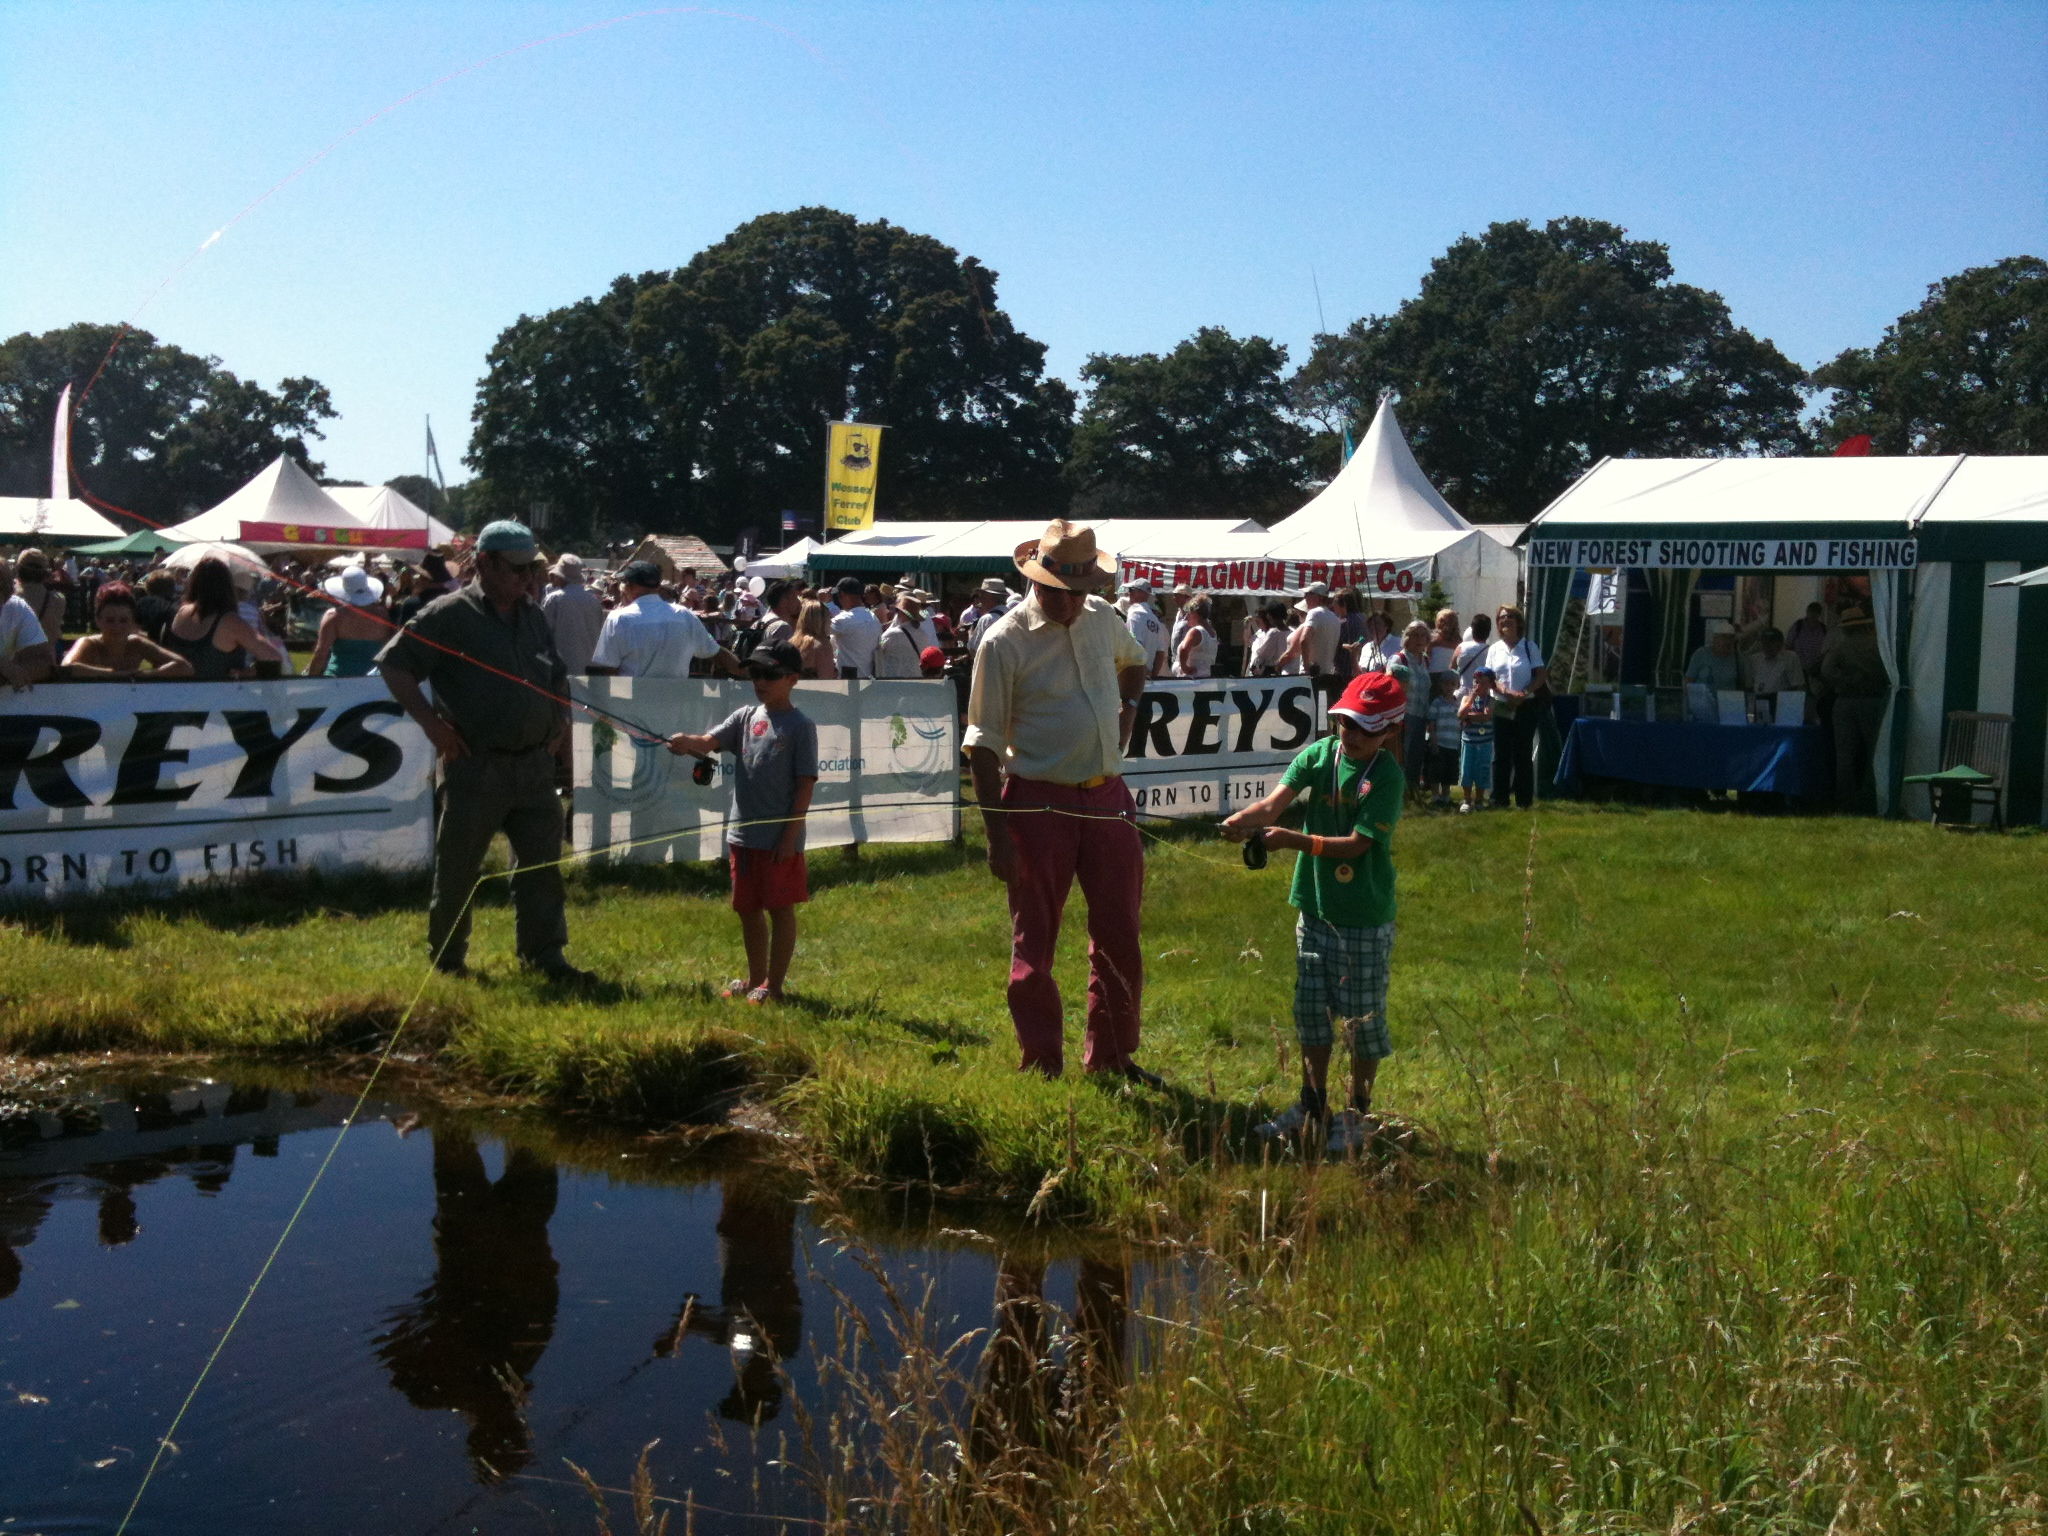 Have a go at casting a fly line in the Courntryside Area of the Show